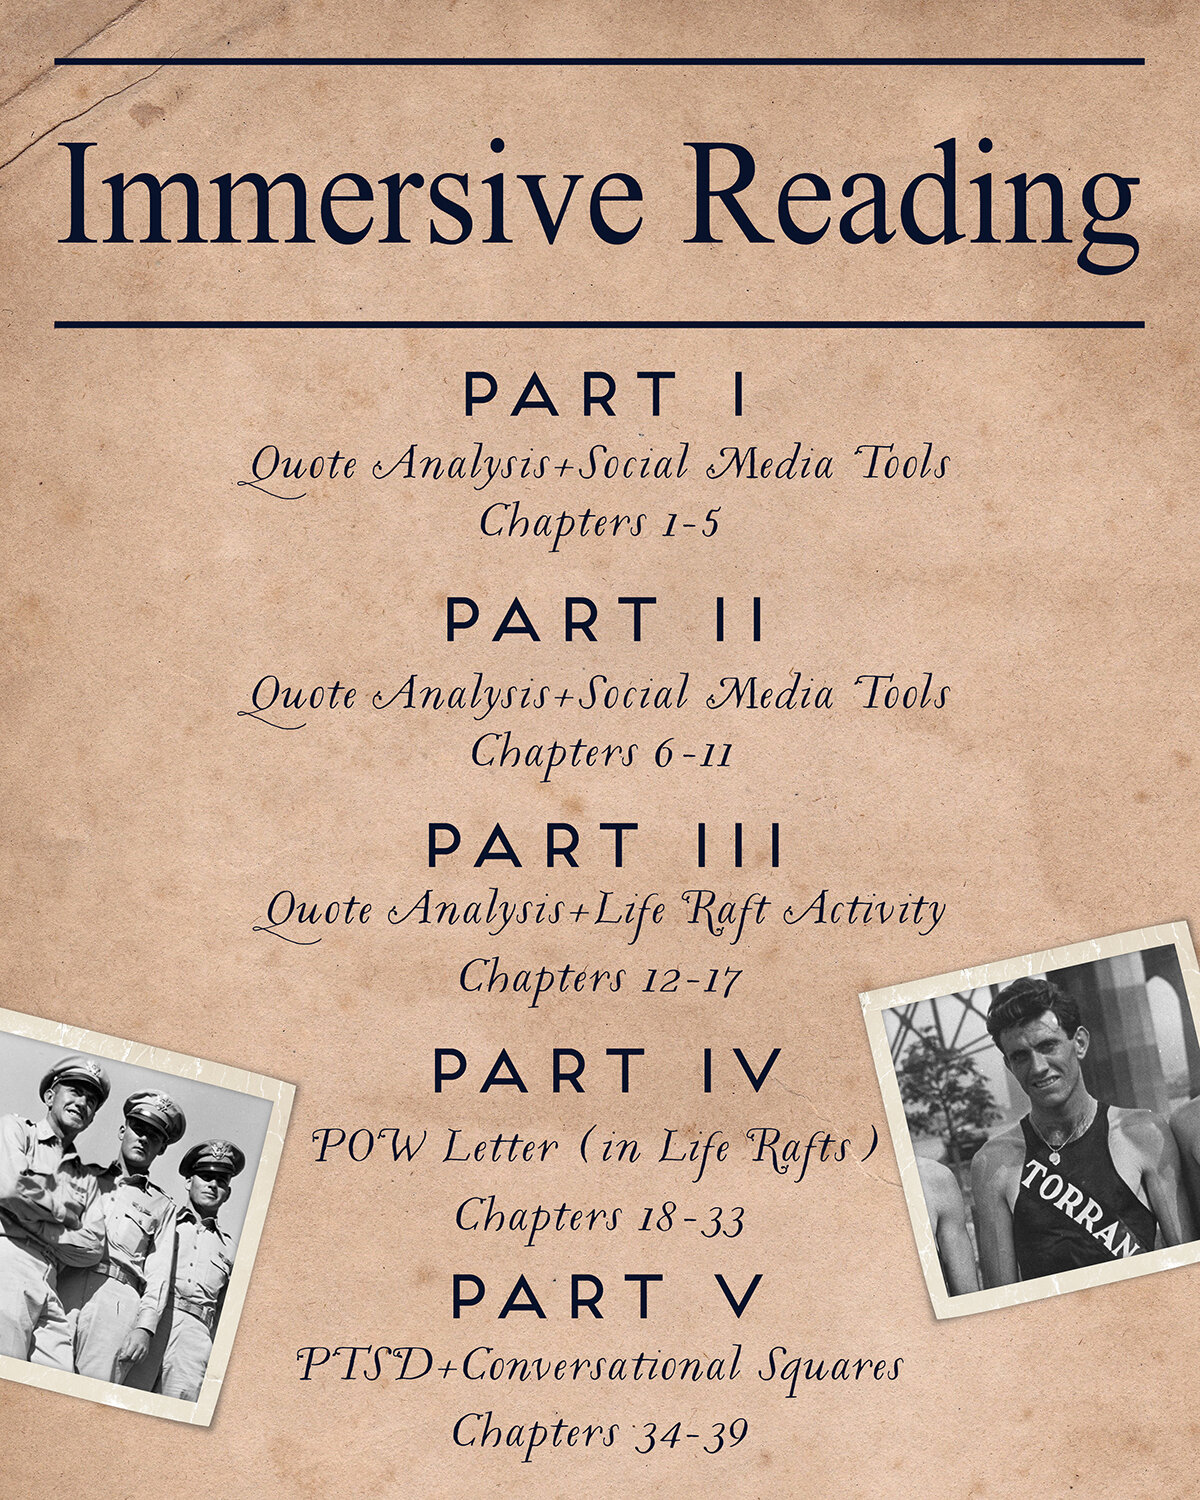 28. ImmersiveReading_Part_Guide 2.jpg